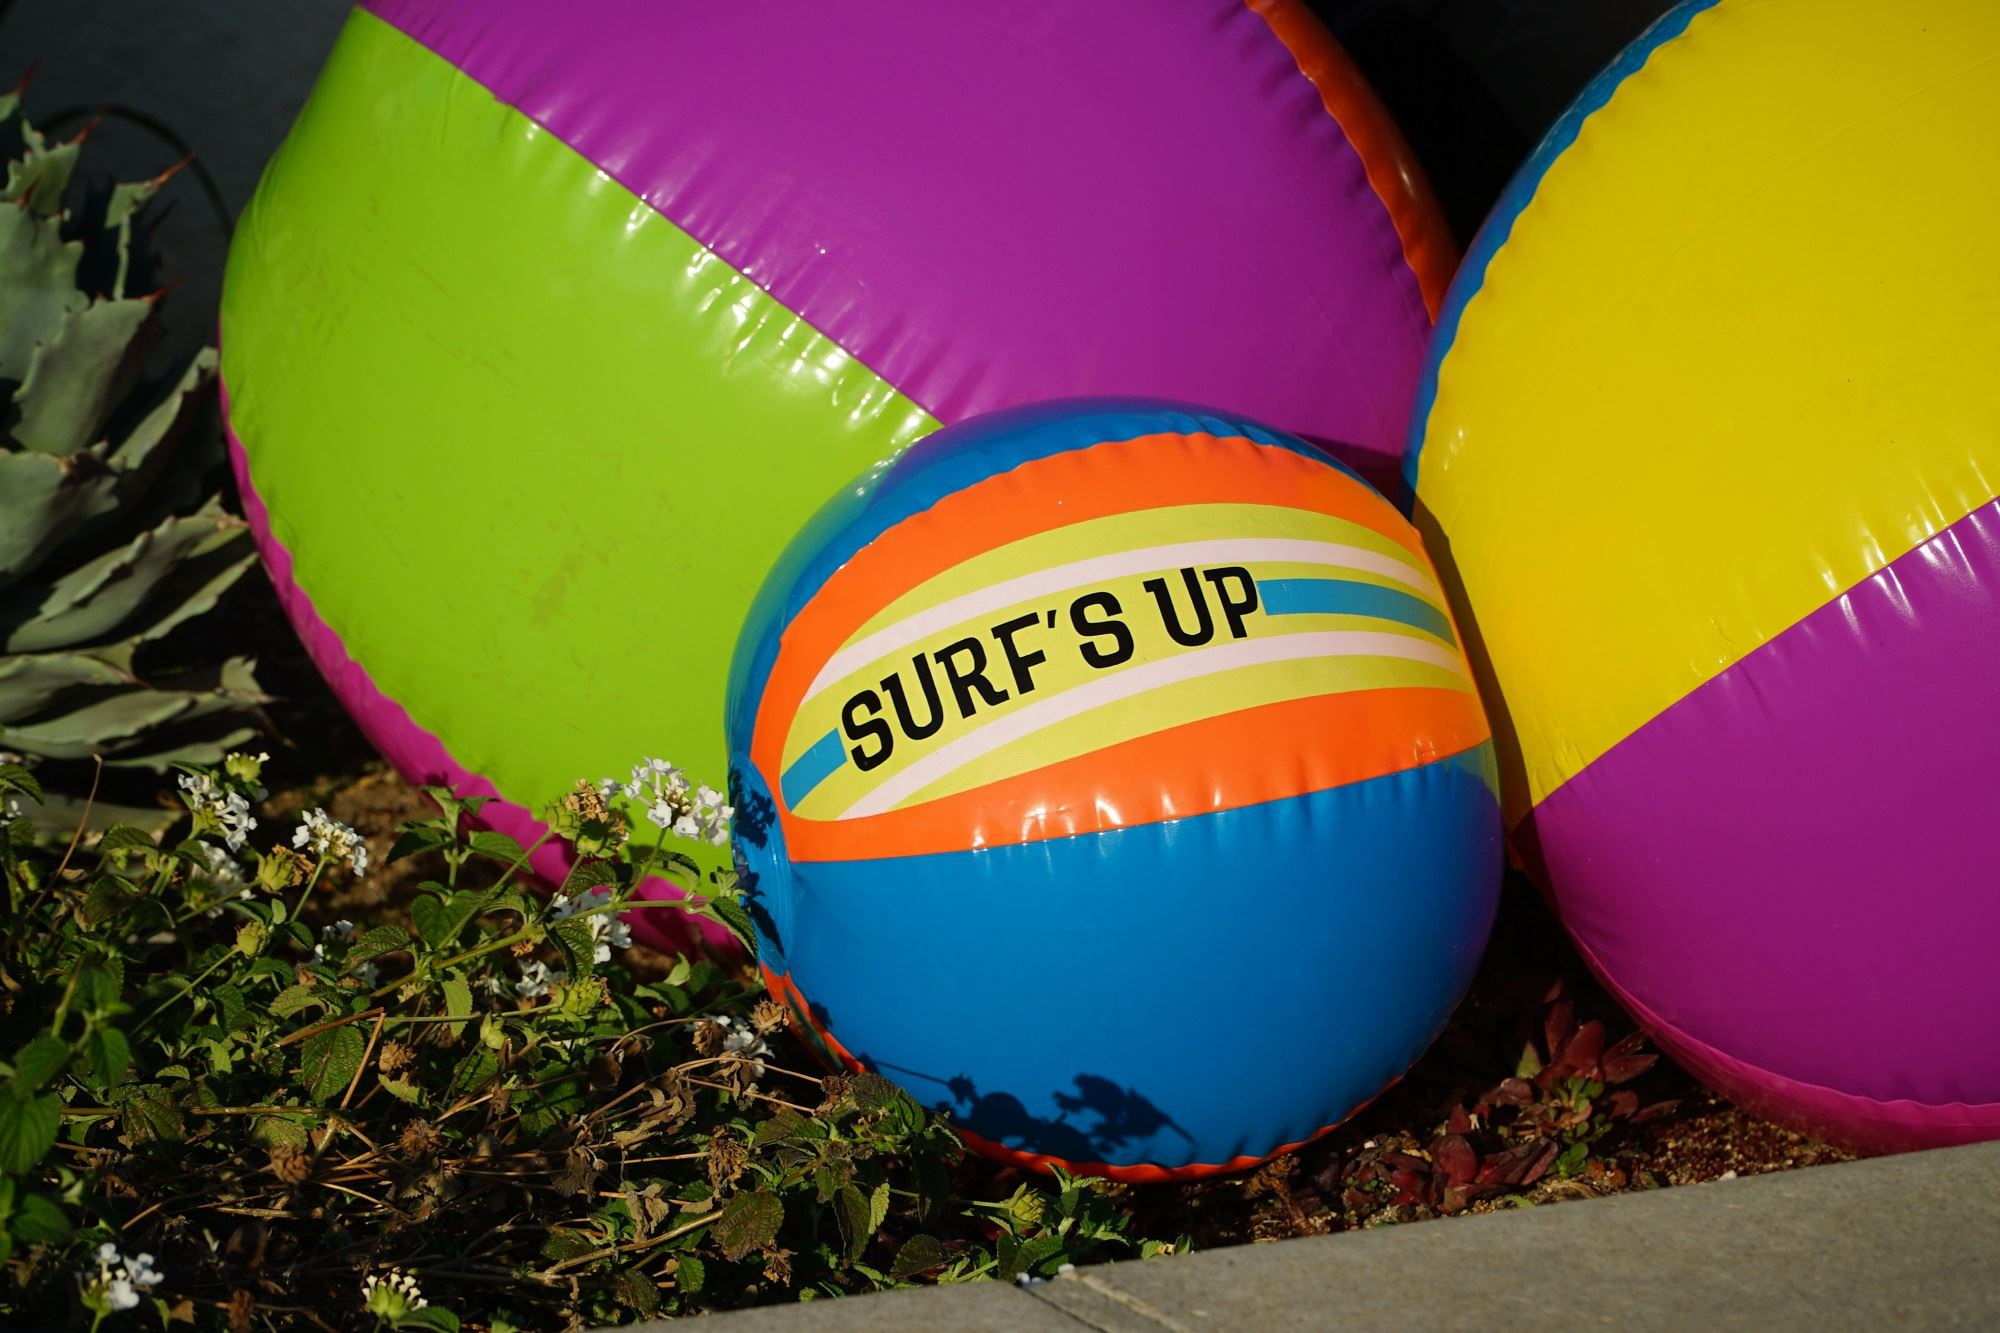 Hungry? Join us for Surf&#39s Up on June 14 in the Mission District